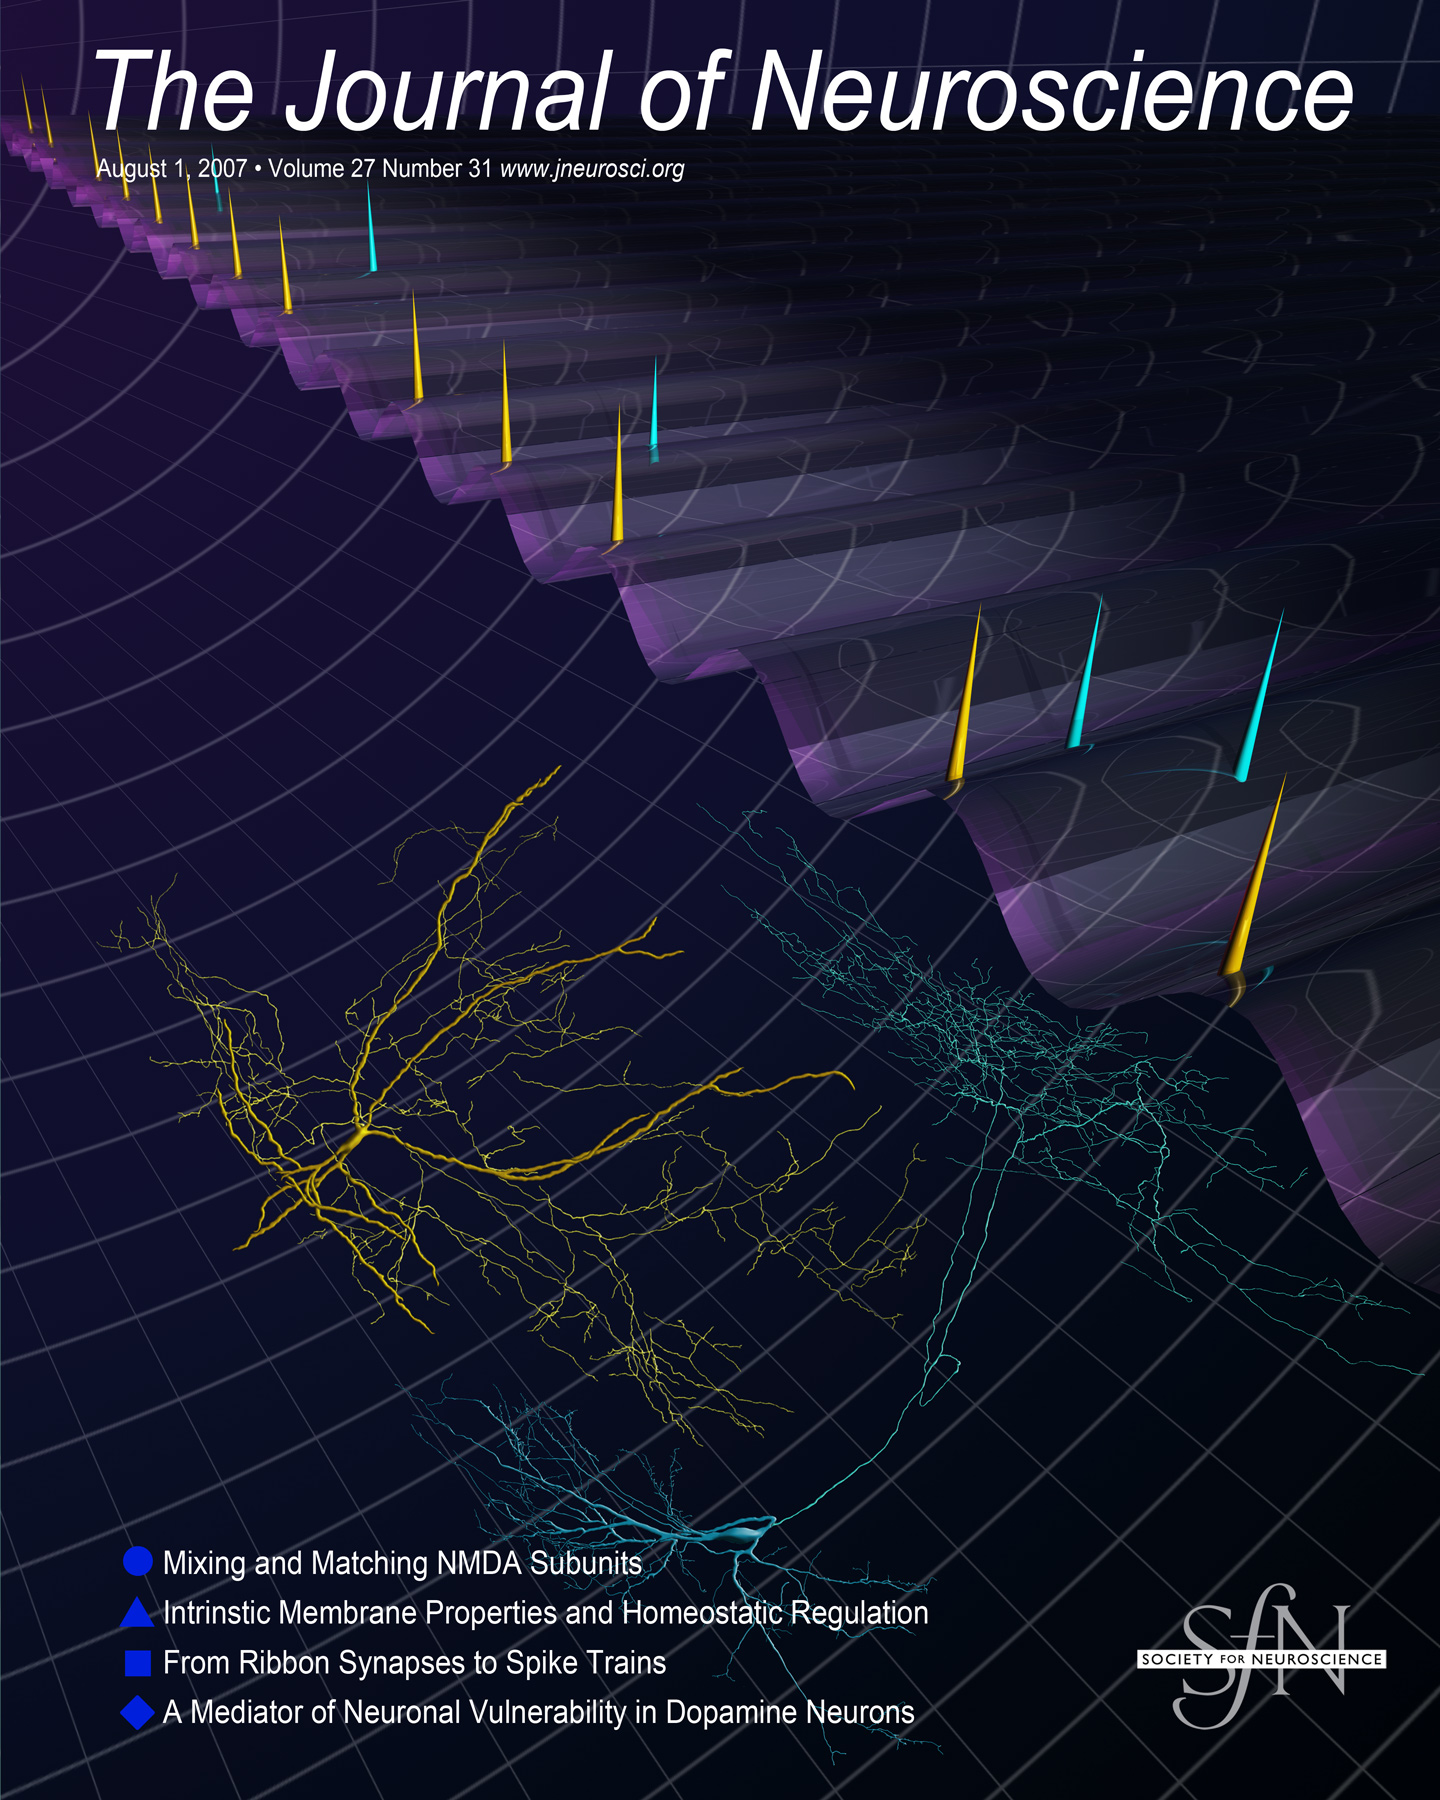 August 1st 2007 cover of Journal of Neuroscience